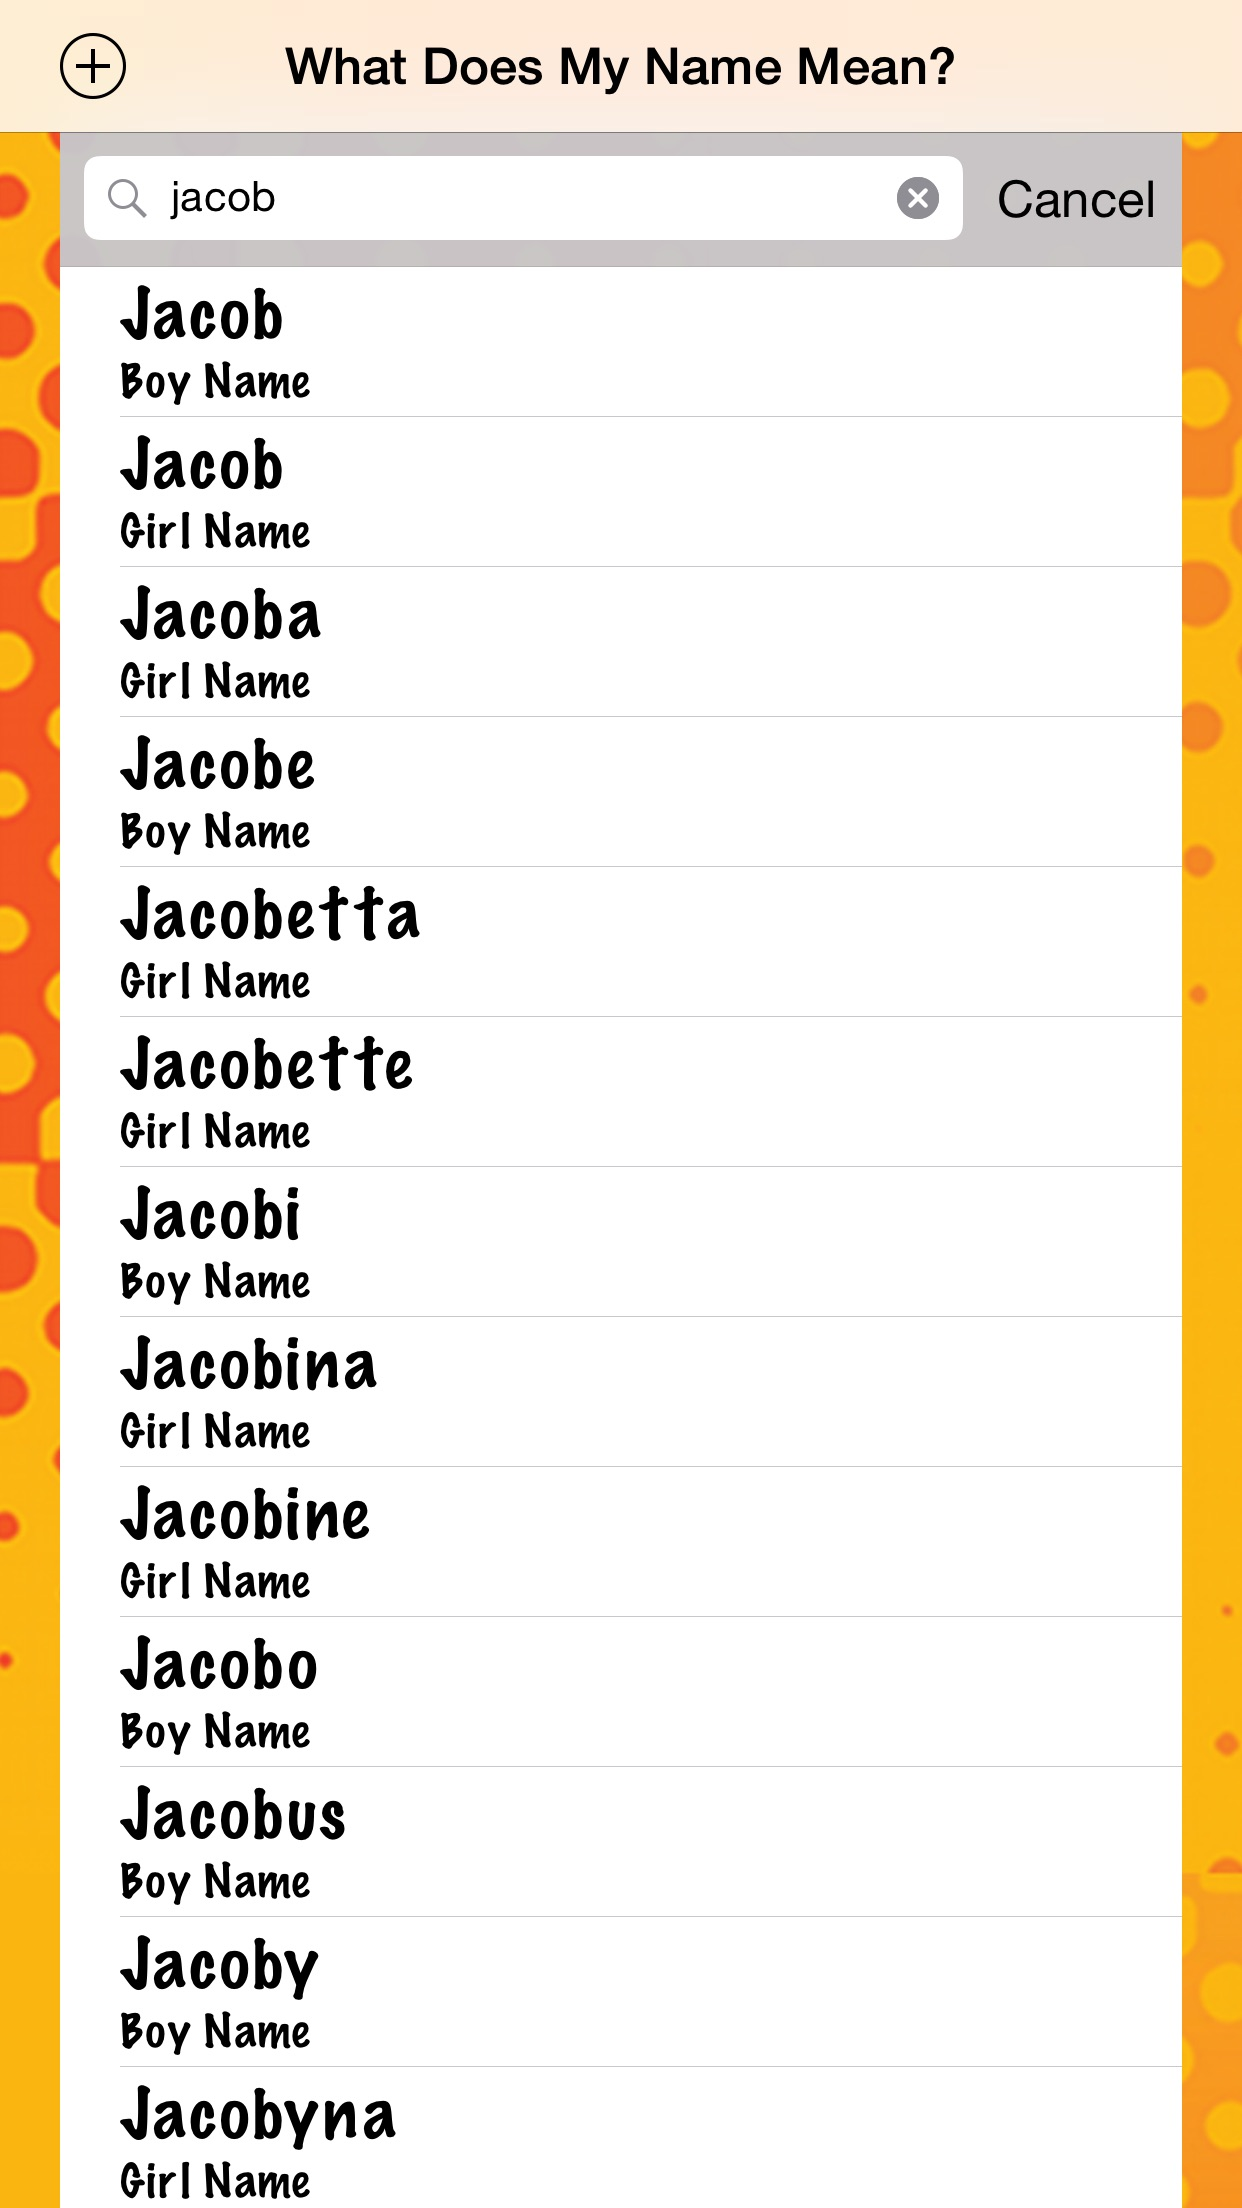 What Does My Name Mean?? Screenshot